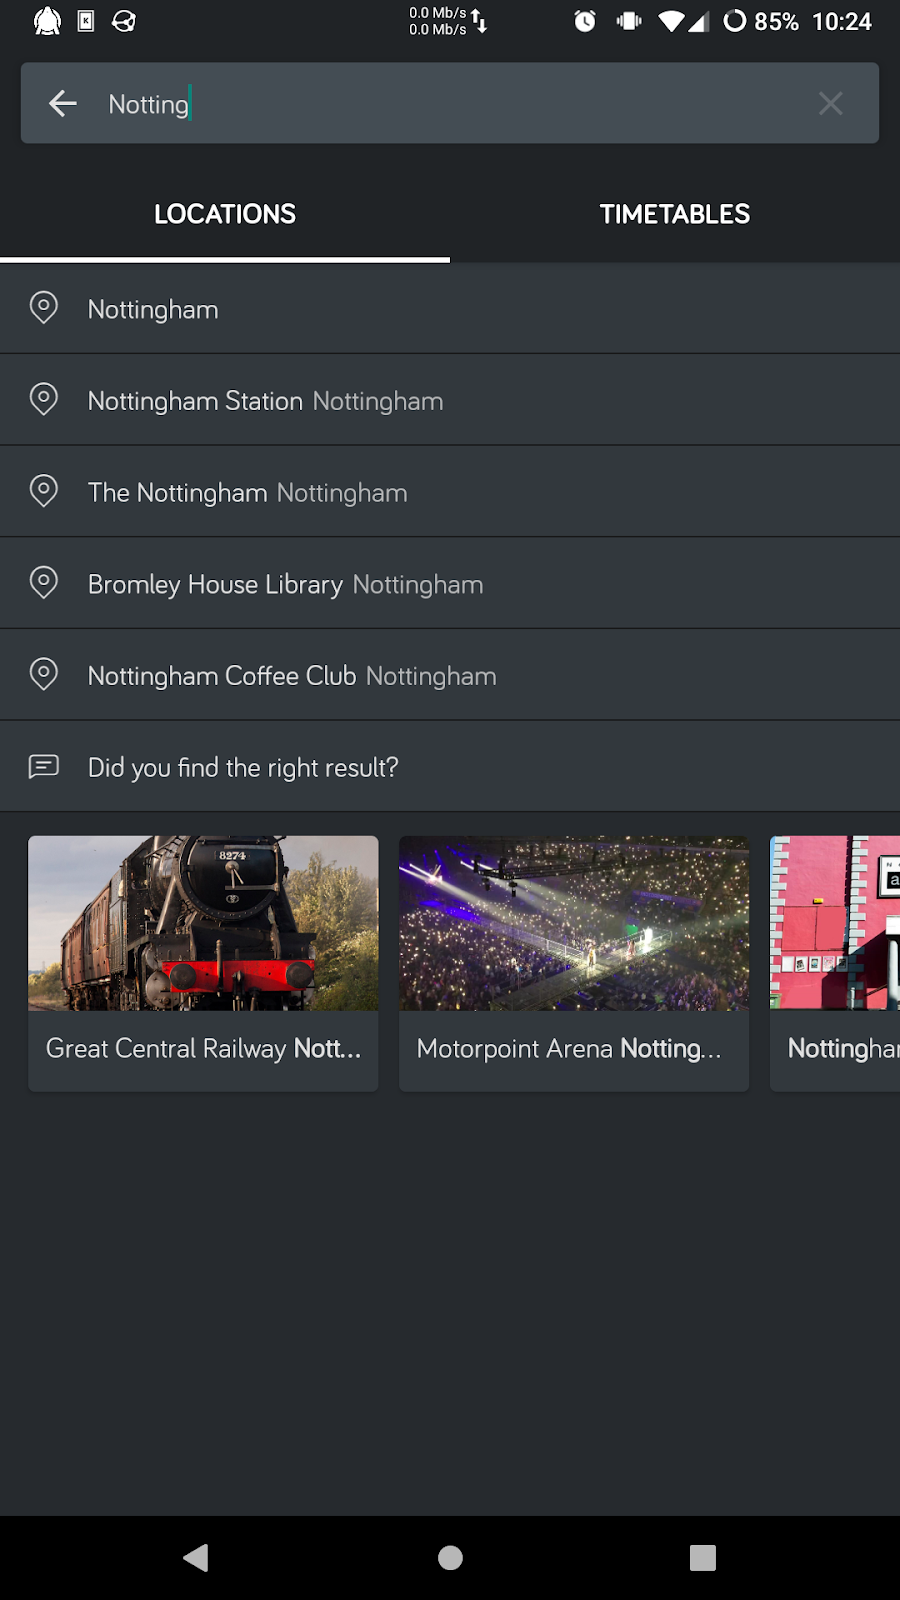 Screenshot of a phone showing location search results